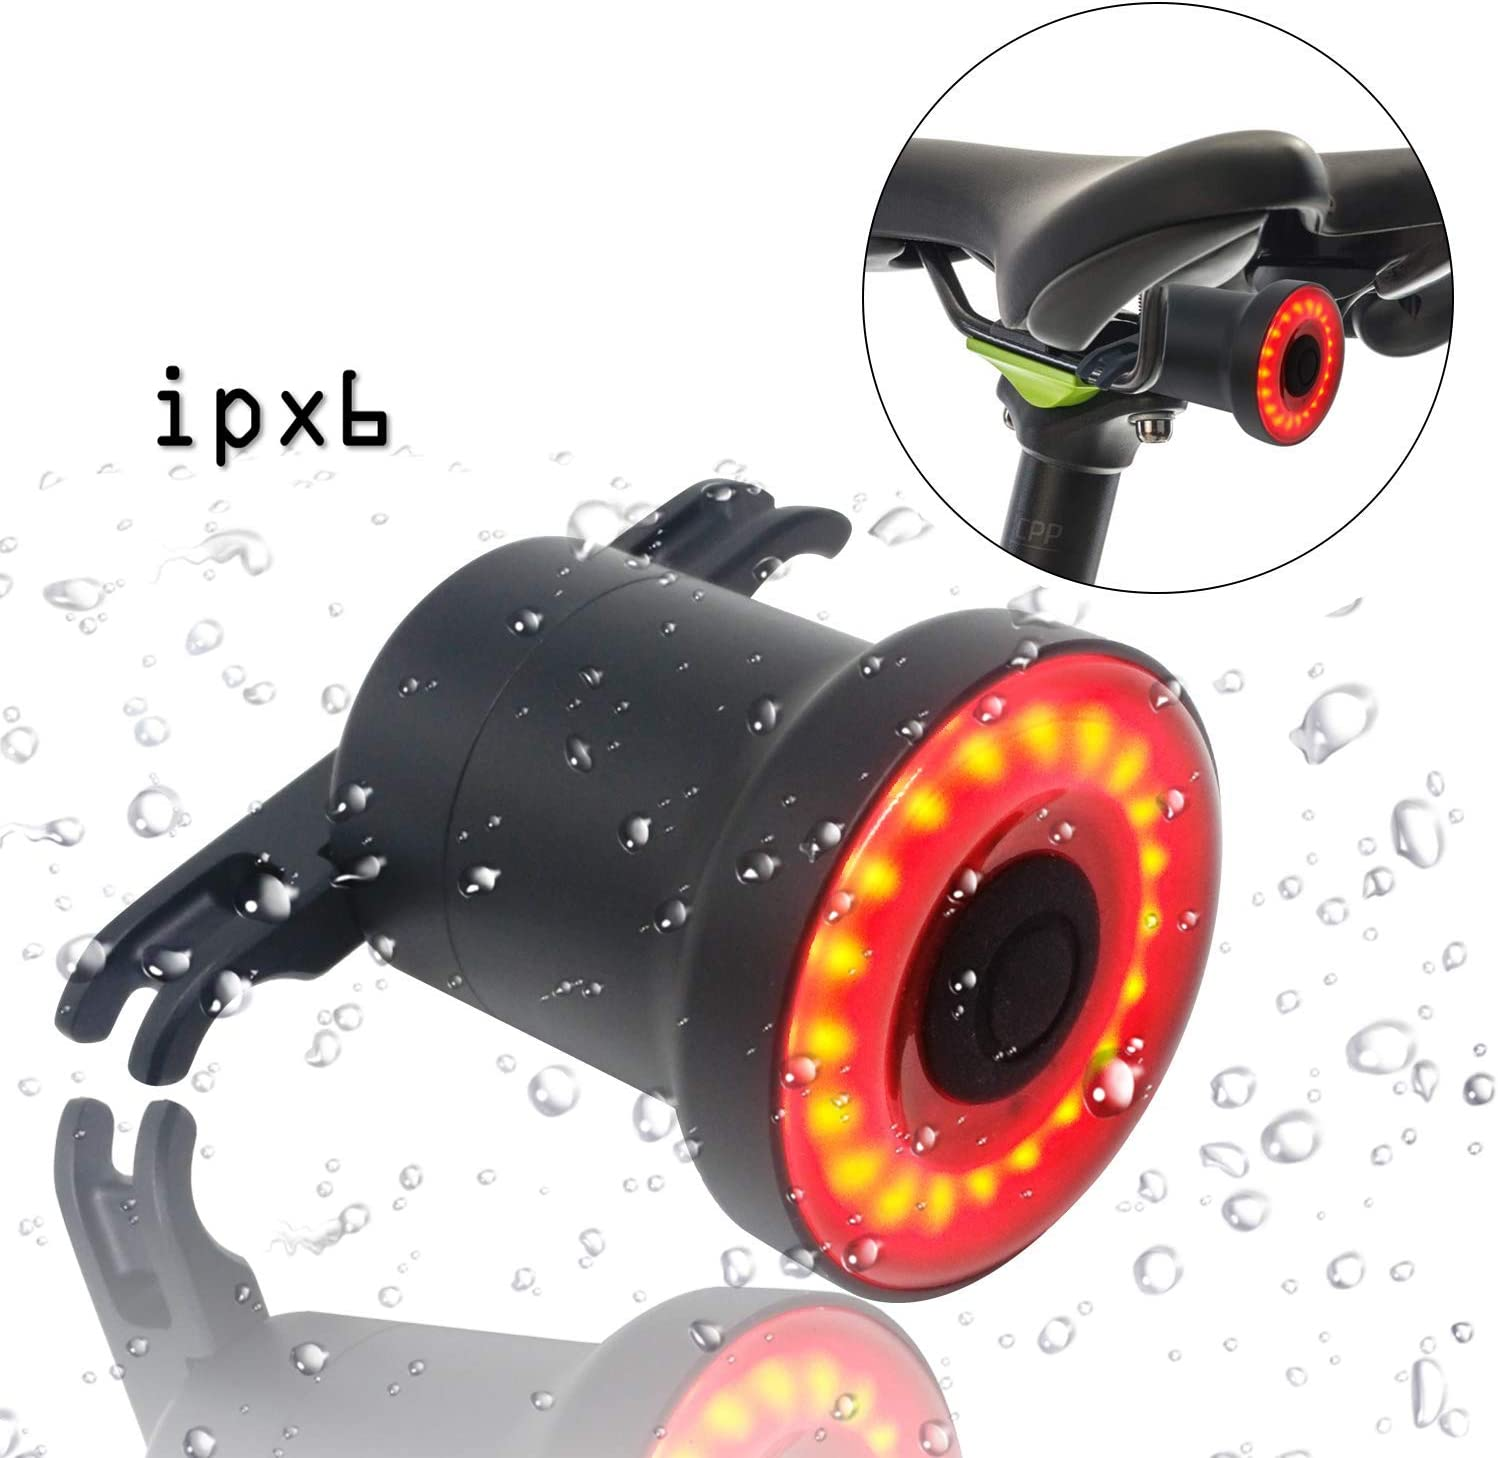 ENFITNIX Bike Tail Light Ultra Bright Rear USB Rechargeable Auto On Off Brake Sensing IPX6 Waterproof Water Resistant Red High Intensity LED Bicycle Lights 30hour Running time for Skateboard